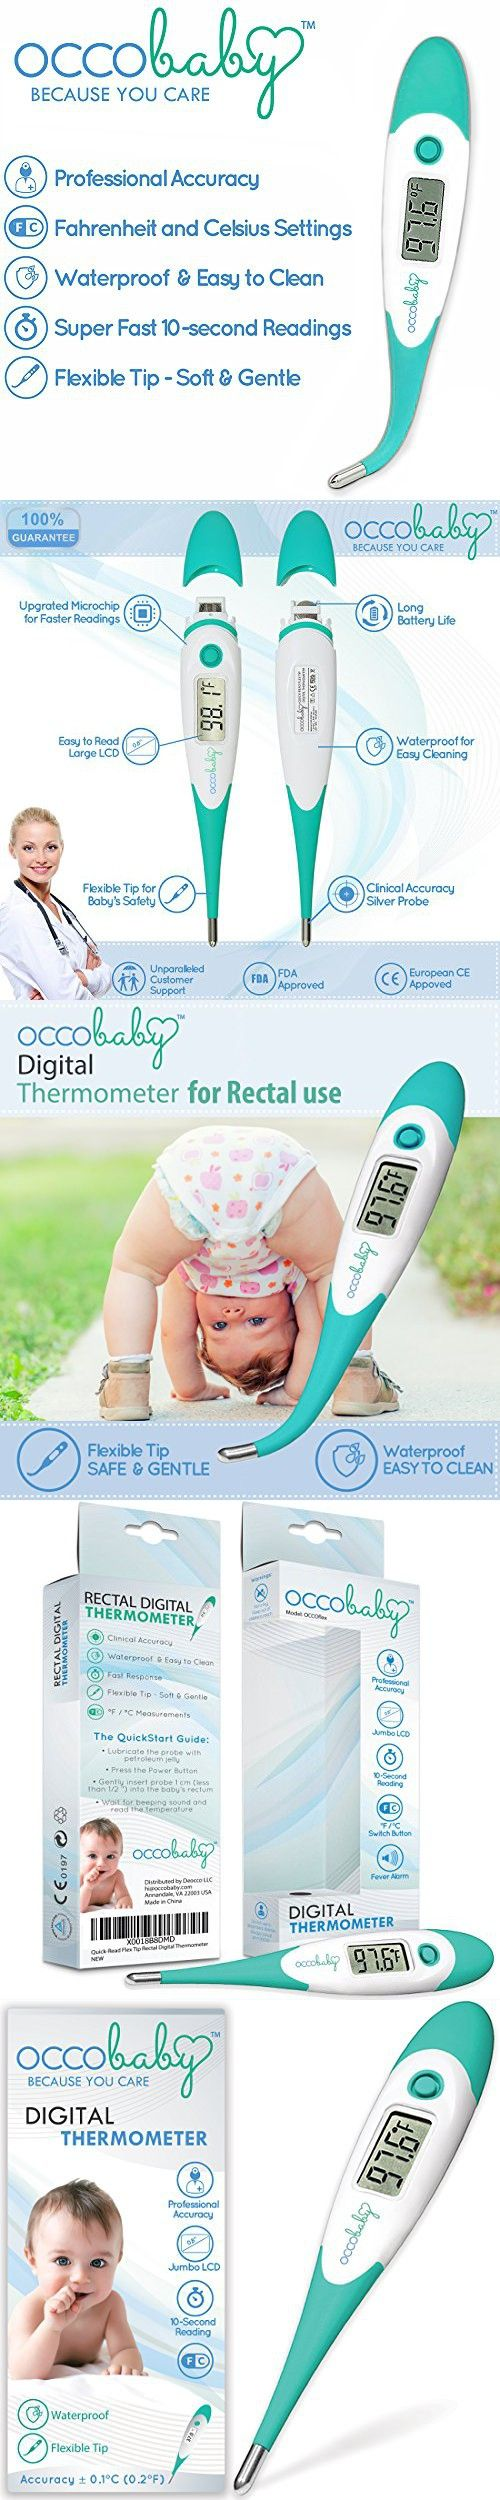 OCCObaby Clinical Digital Baby Thermometer - Flexible Tip and 10 Second Fever Read by Rectal & Oral | 2017 Edition | Waterproof FDA Approved Medical Thermometer for Infants & Toddlers